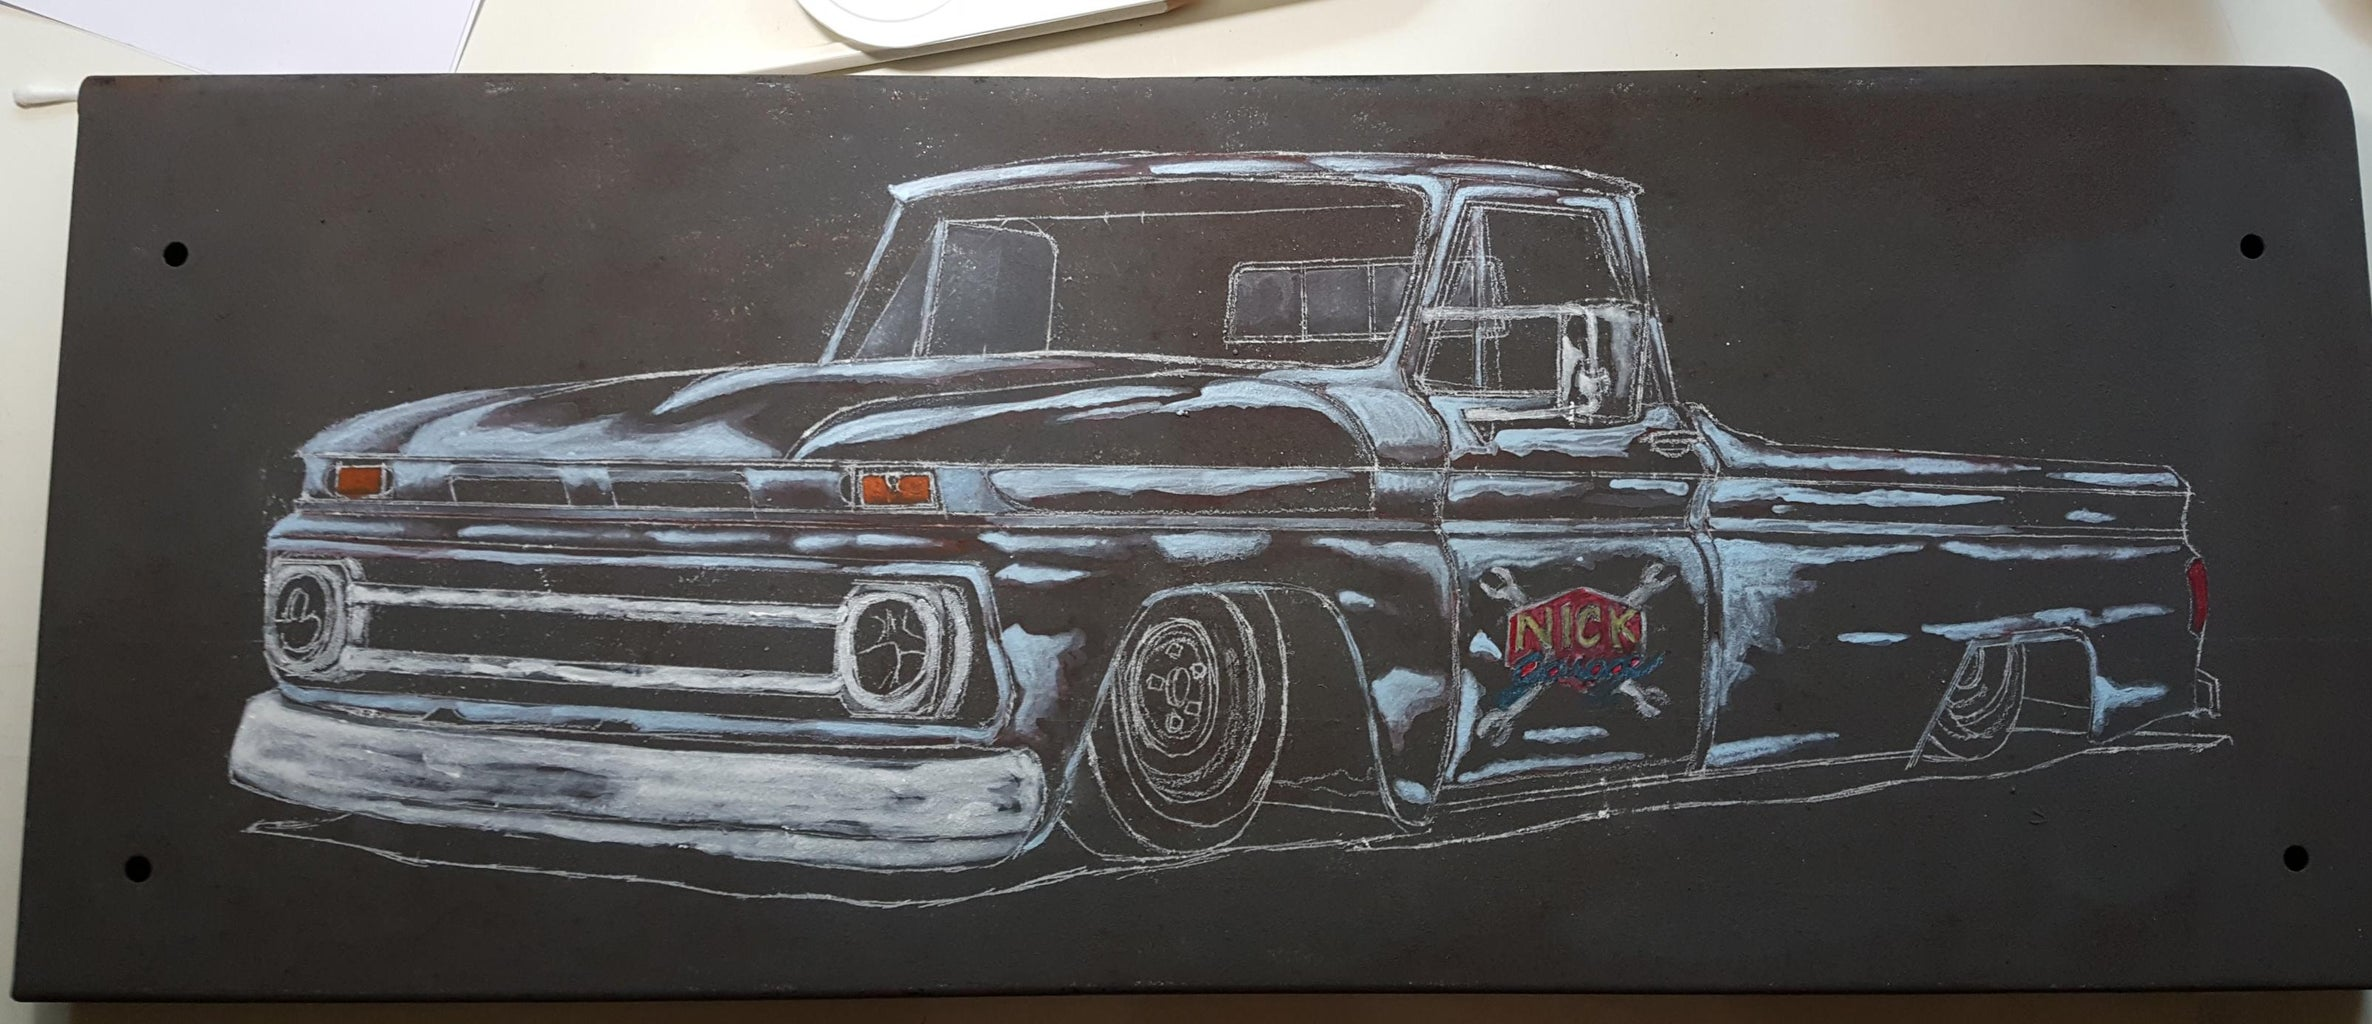 Paint the Truck.